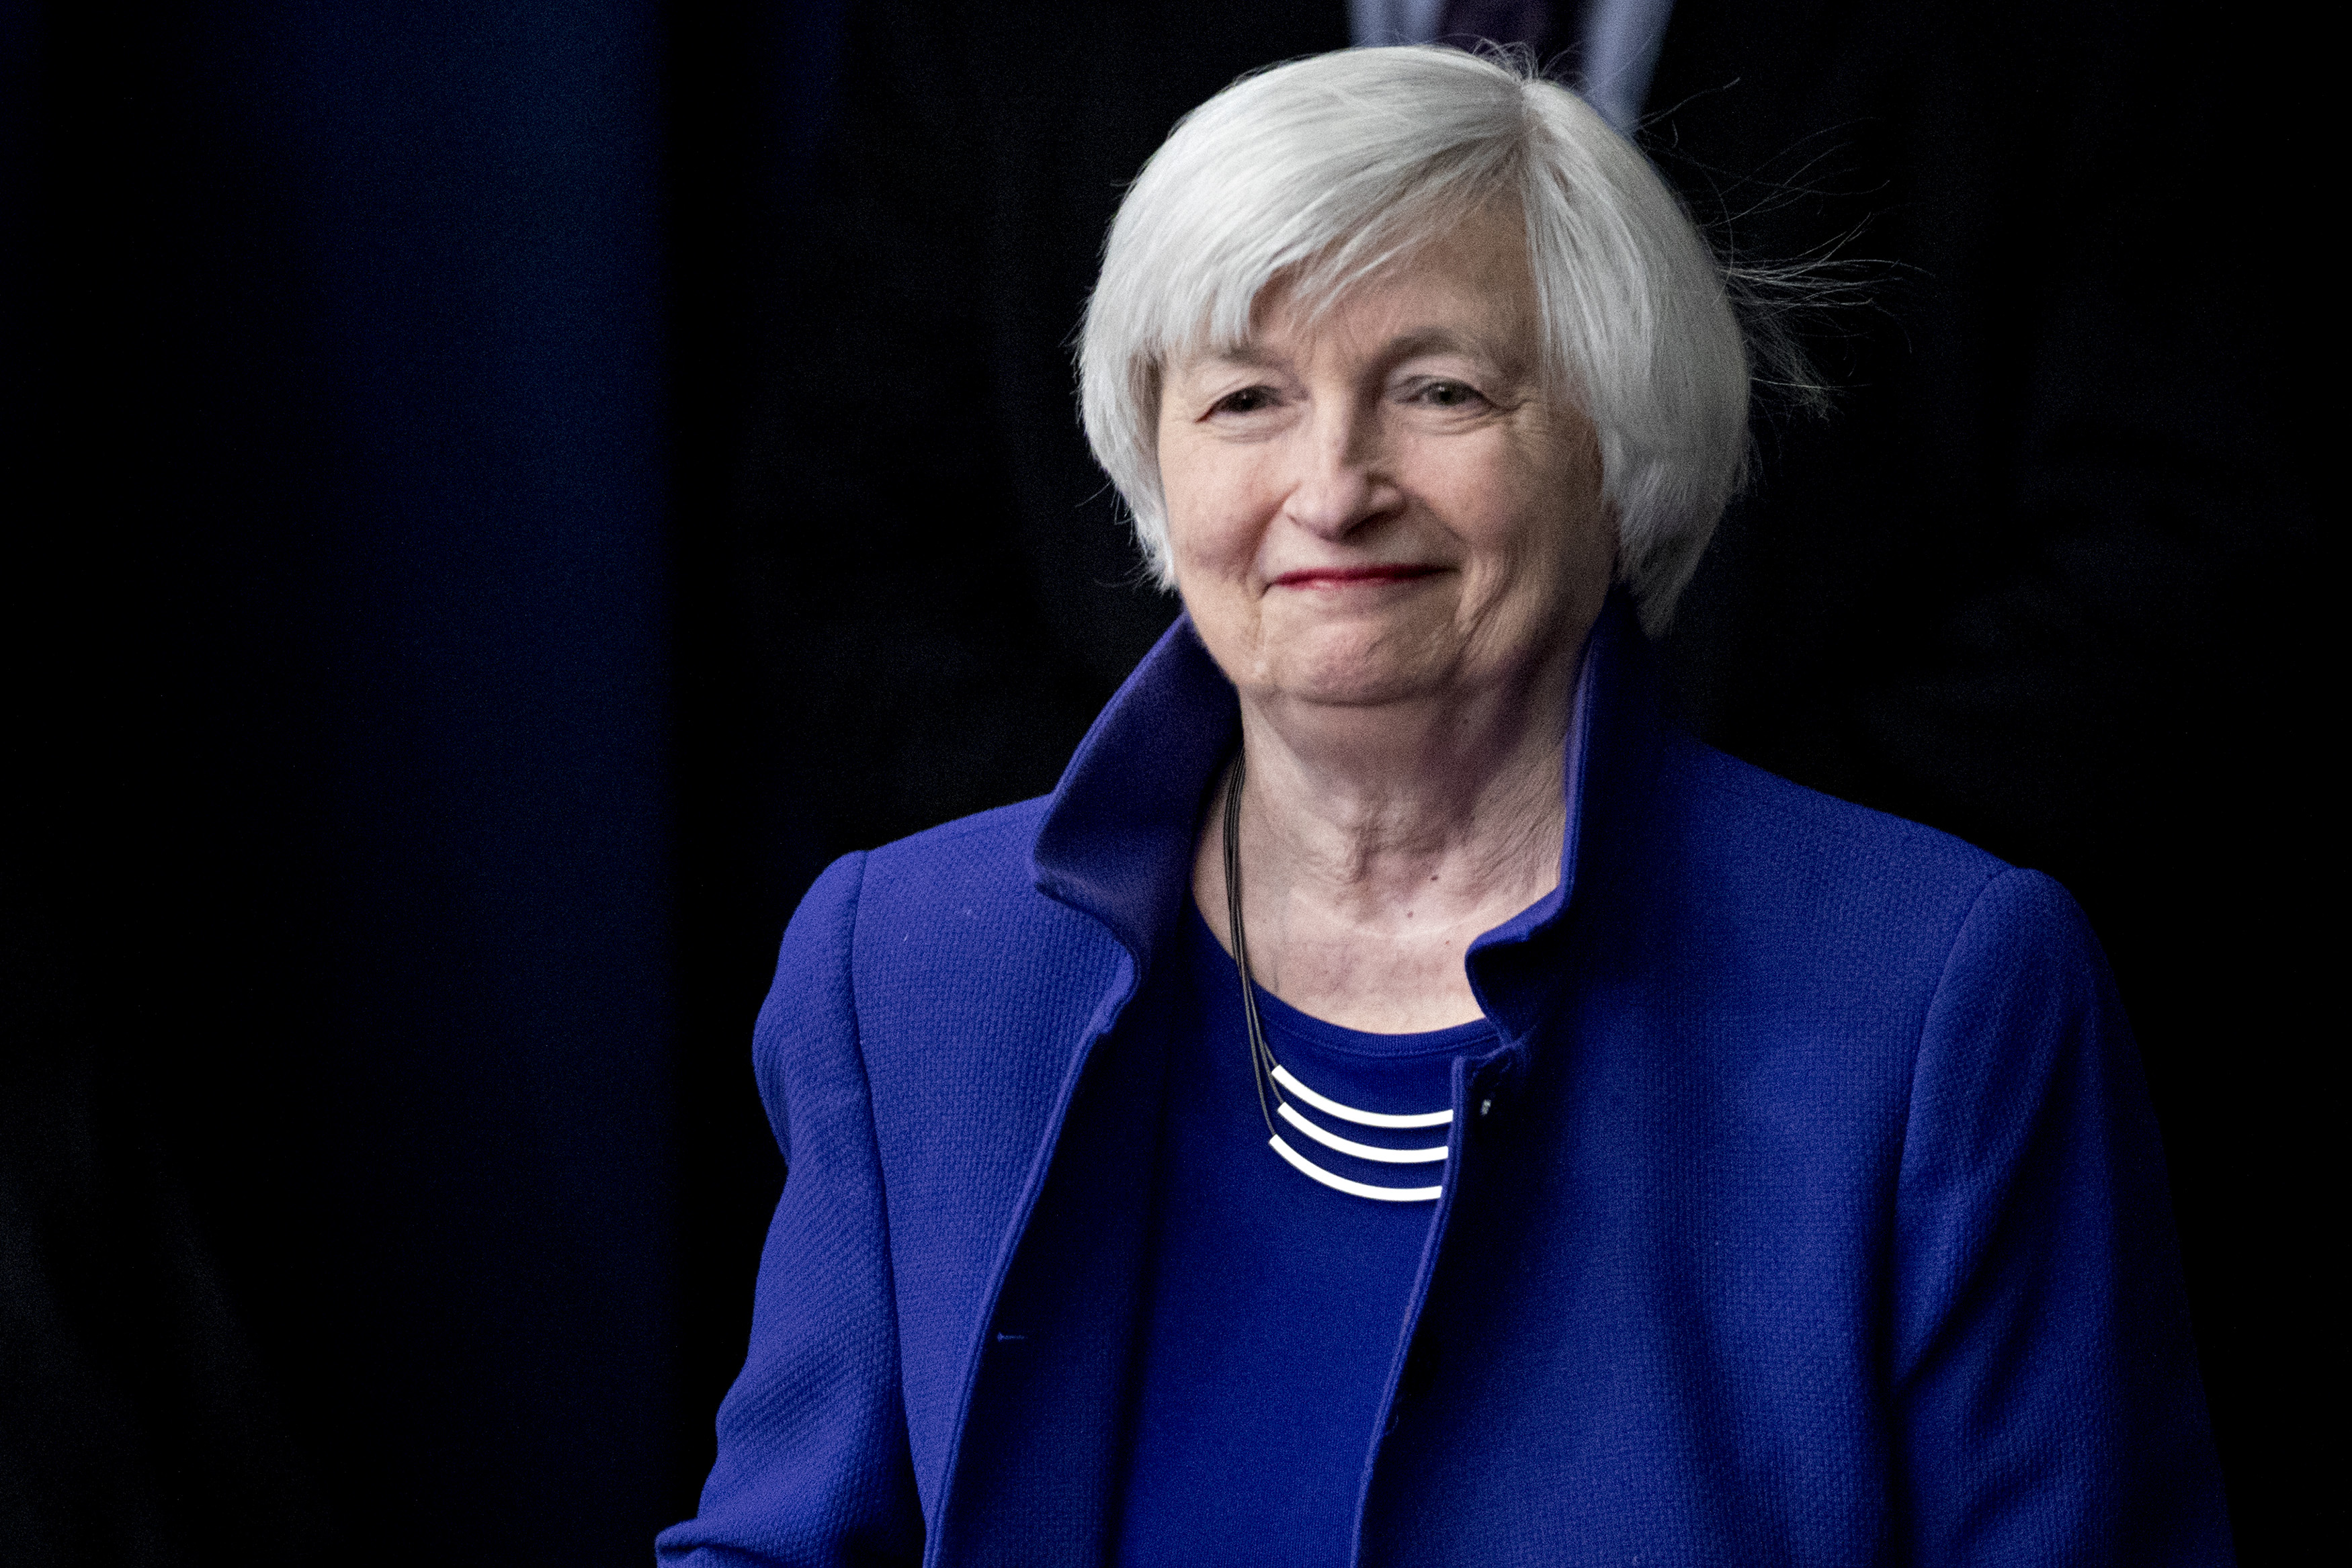 Janet Yellen arrives to a news conference following a Federal Open Market Committee (FOMC) meeting.